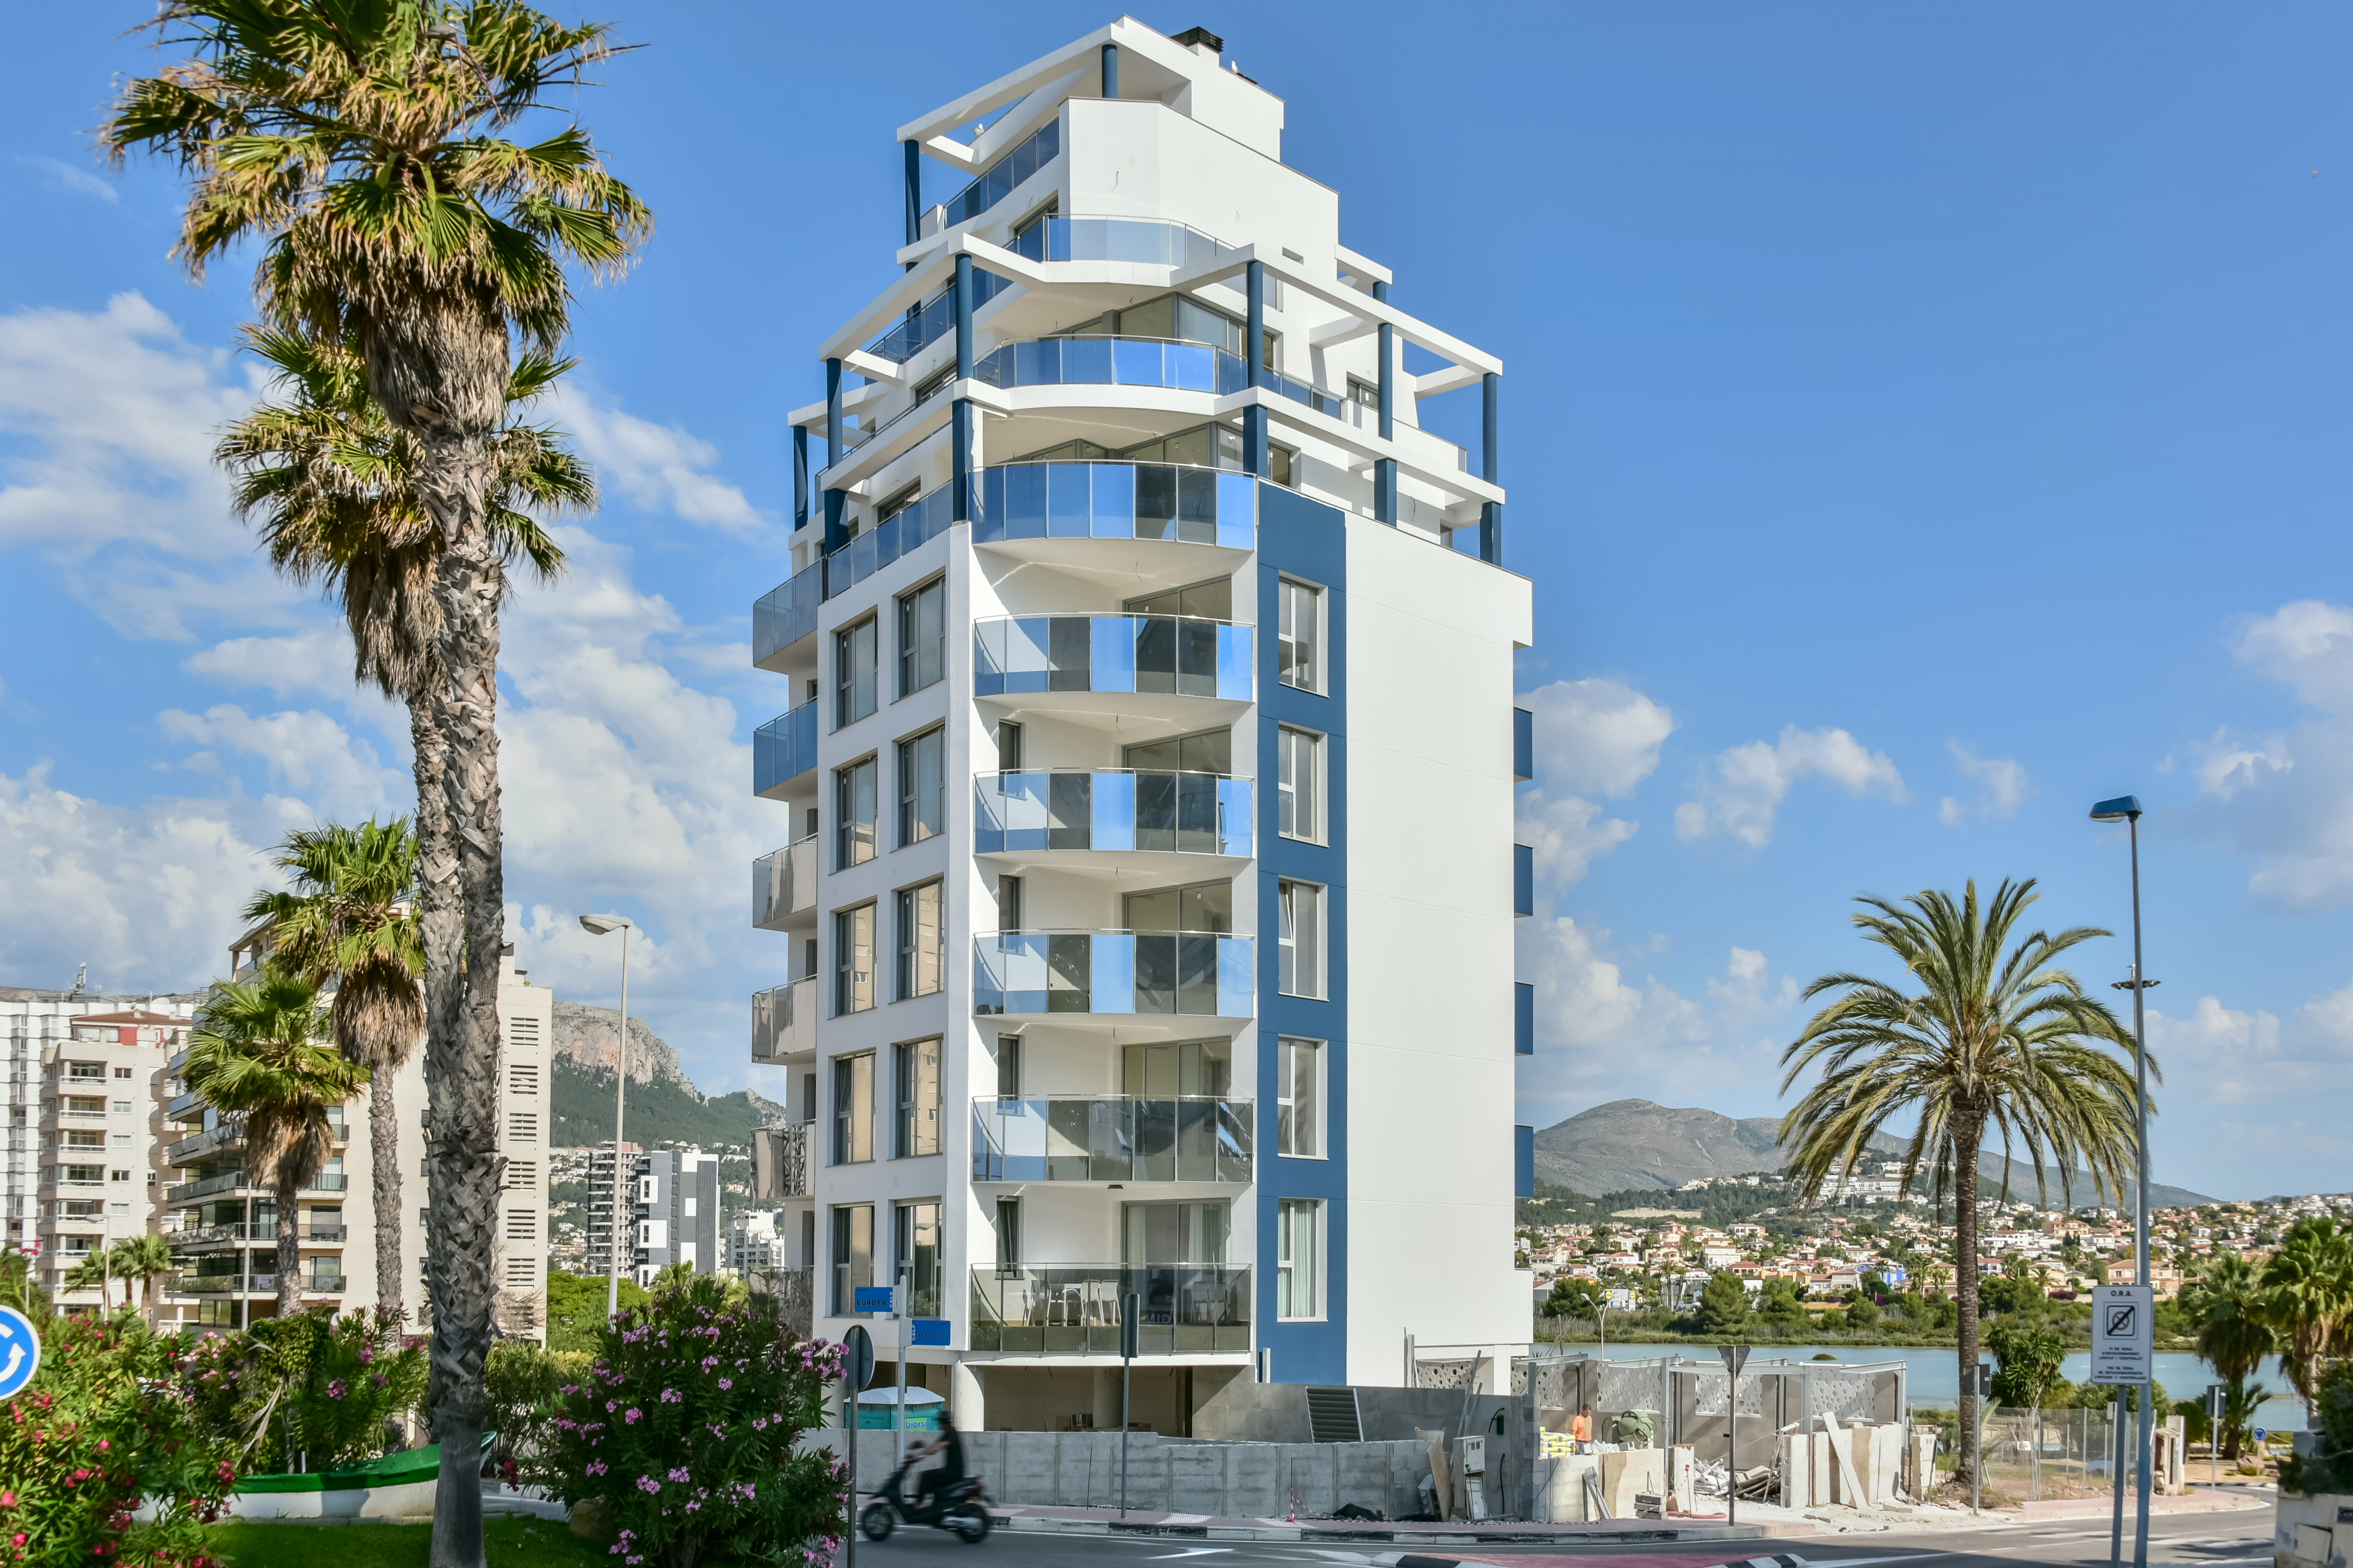 Luxury apartments Holamar in Calpe